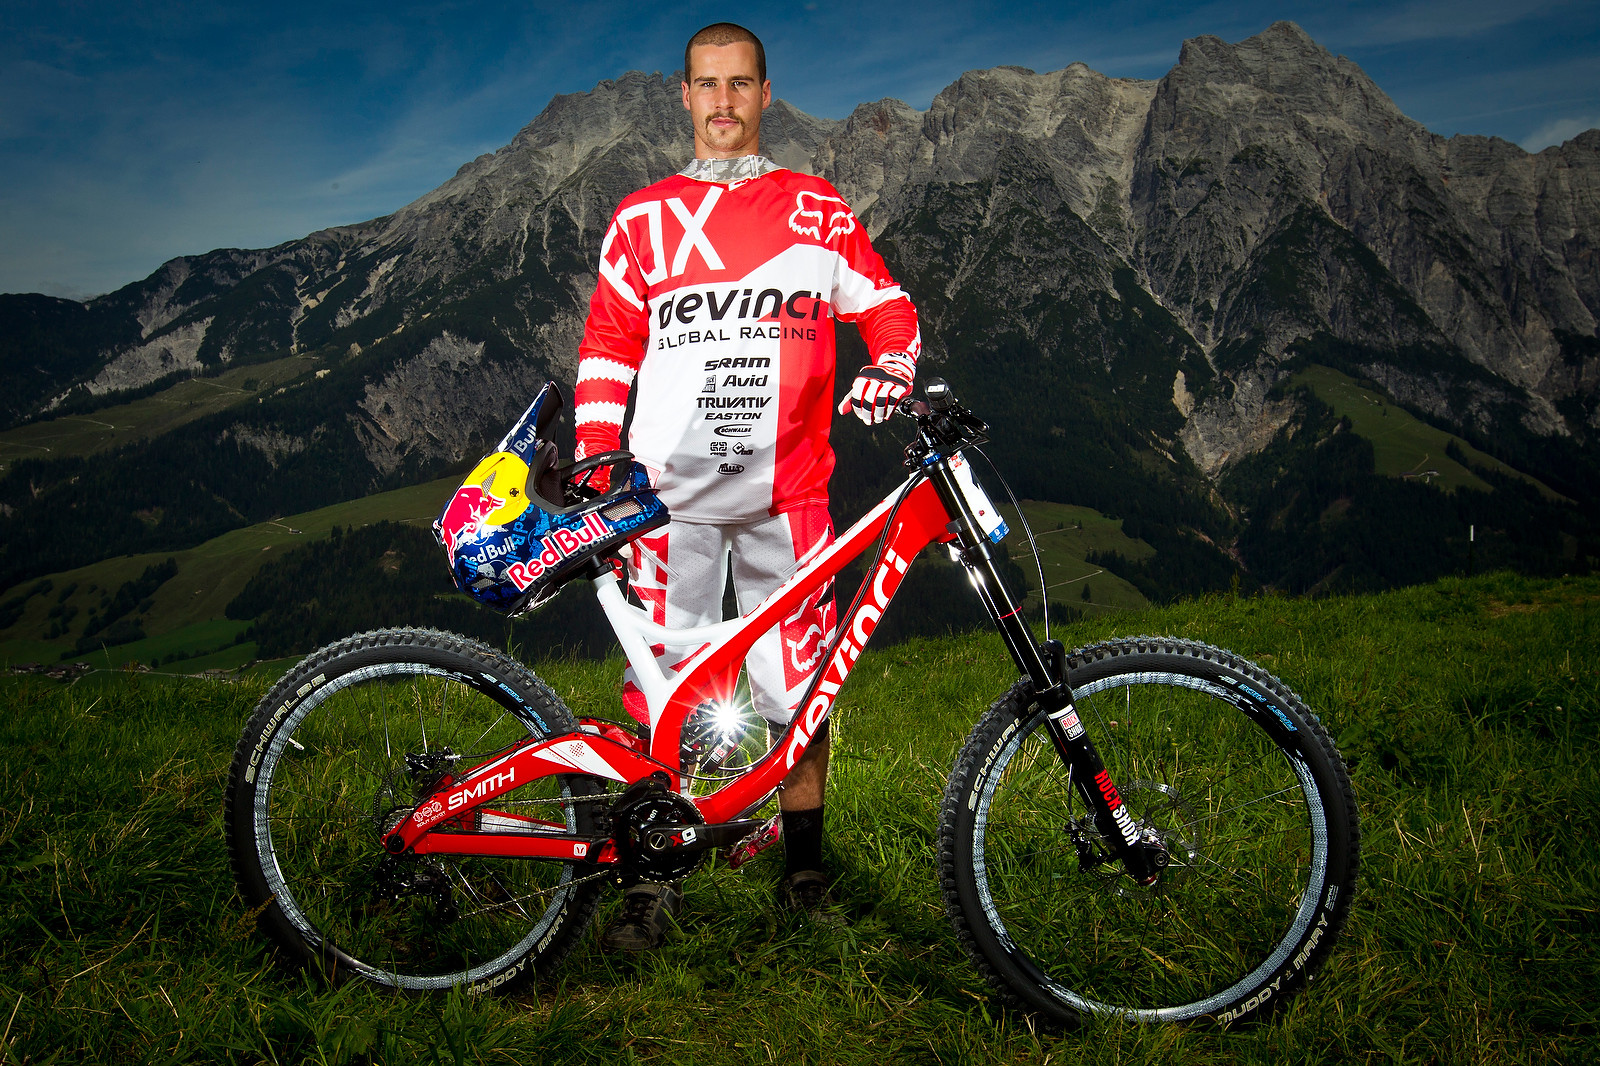 Steve Smith with his Devinci Wilson Carbon - World Championships Riders and Bikes - Mountain Biking Pictures - Vital MTB